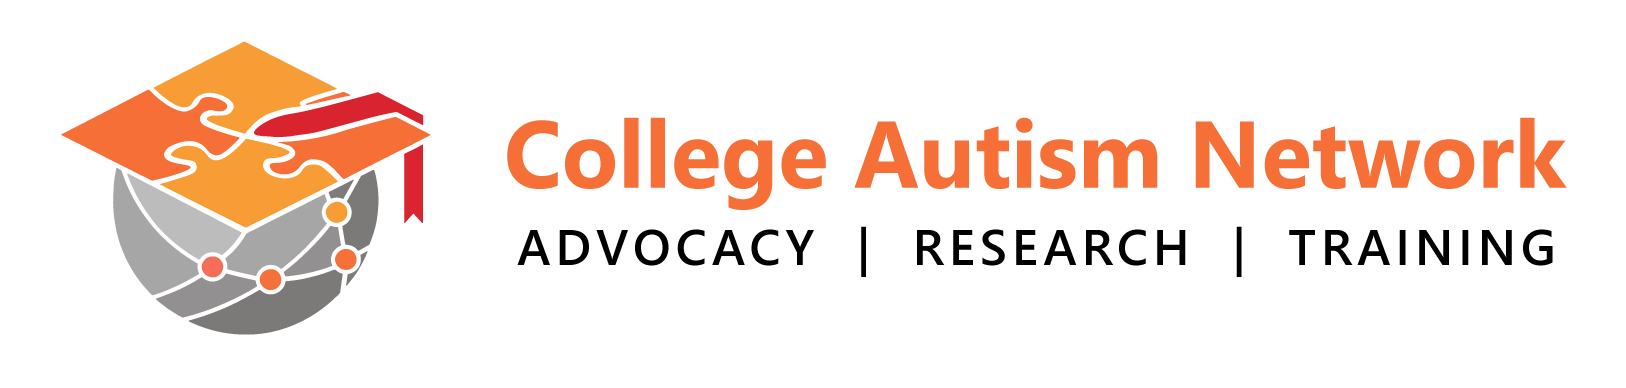 College Autism Network